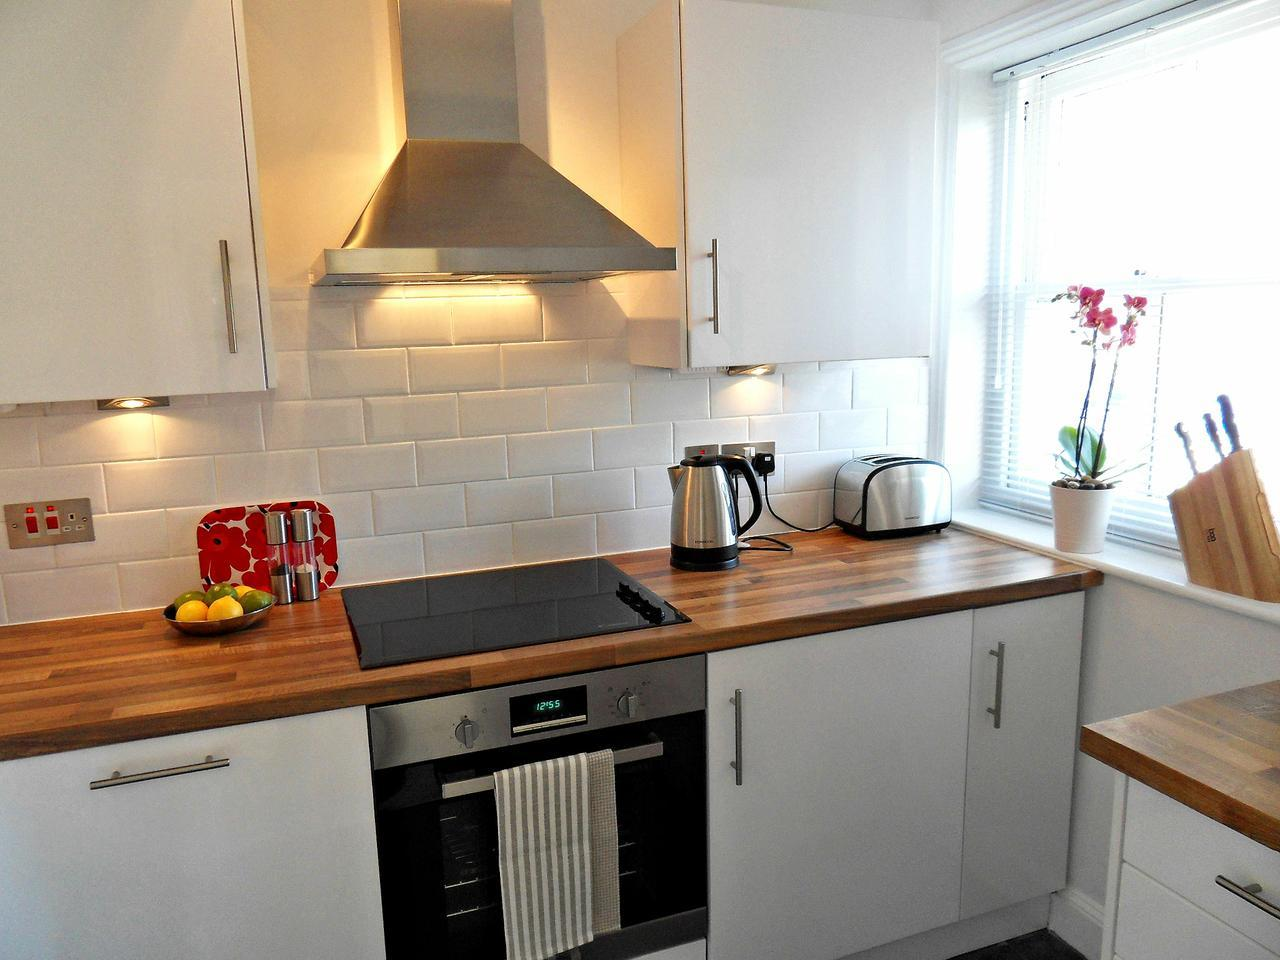 Kemptown Apartment, Brighton & Hove Images - 6